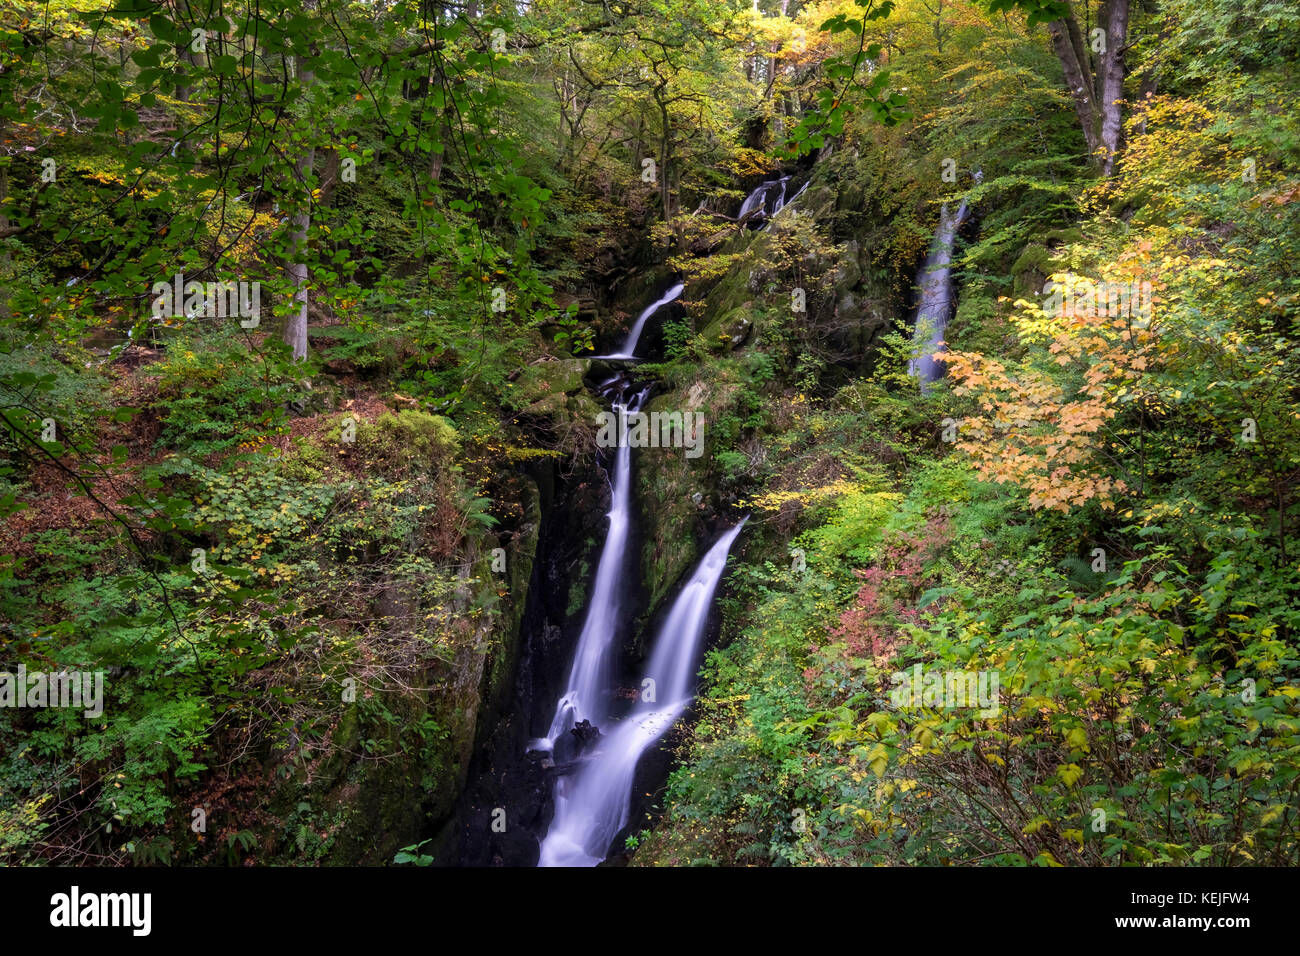 Stock Ghyll Force waterfall in autumn, near Ambleside, Lake District National Park, Cumbria, England, UK - Stock Image